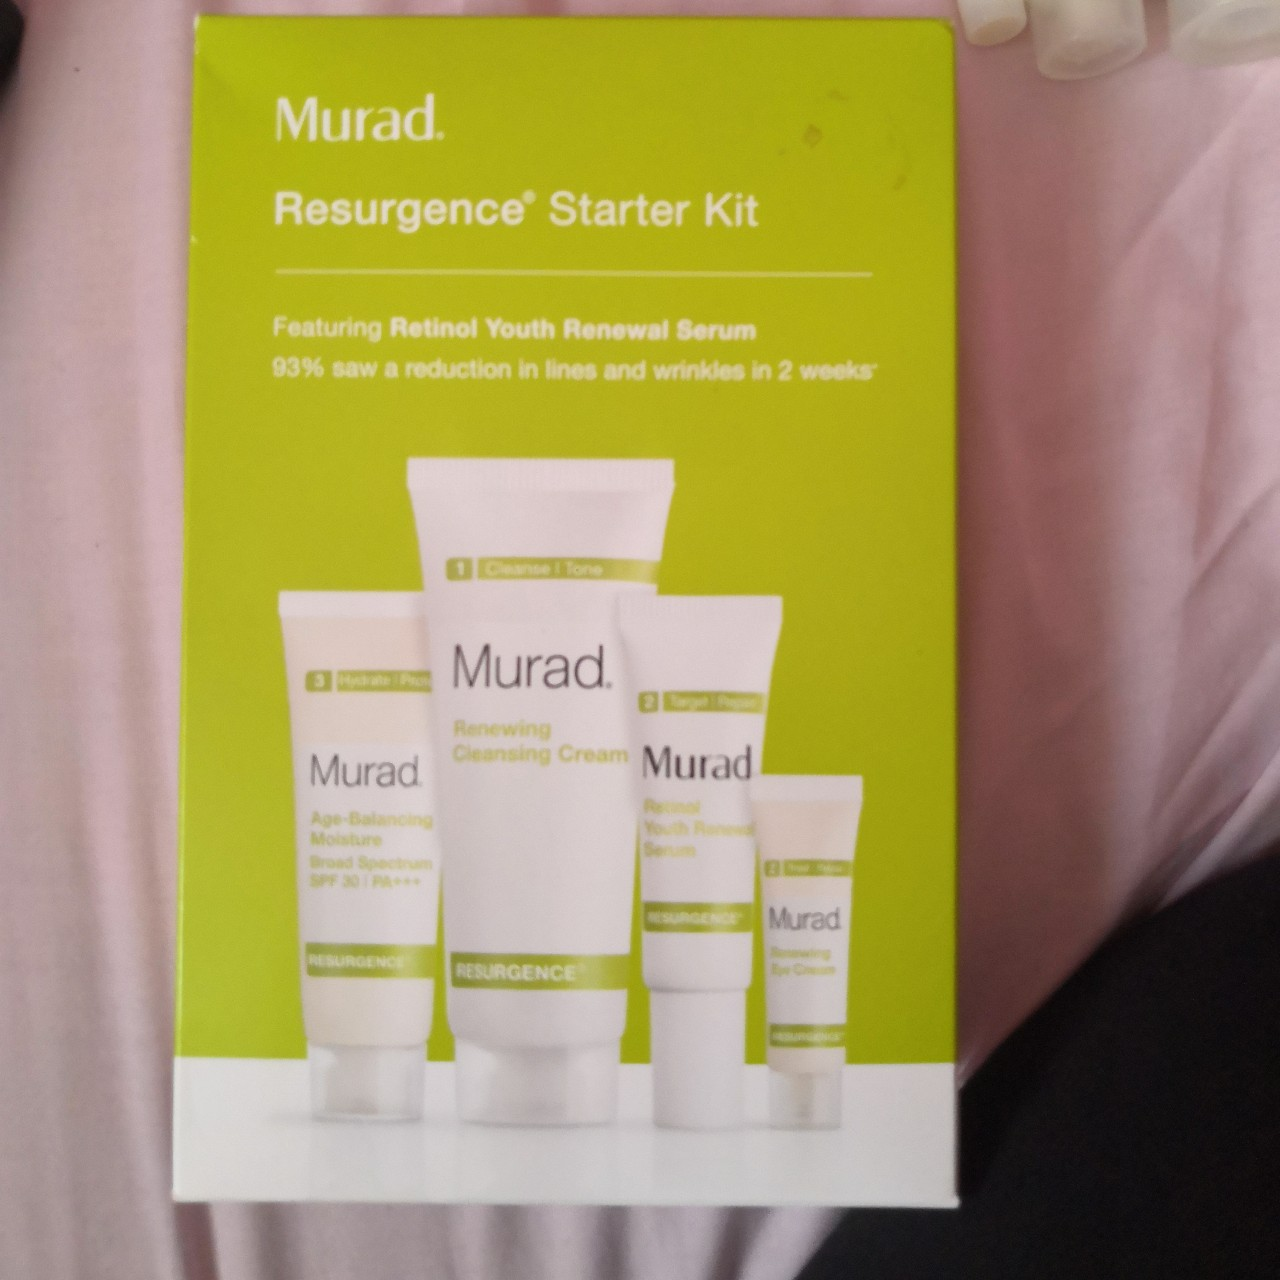 Murad Resurgence Starter Kit Featuring Retinol Youth    - Depop